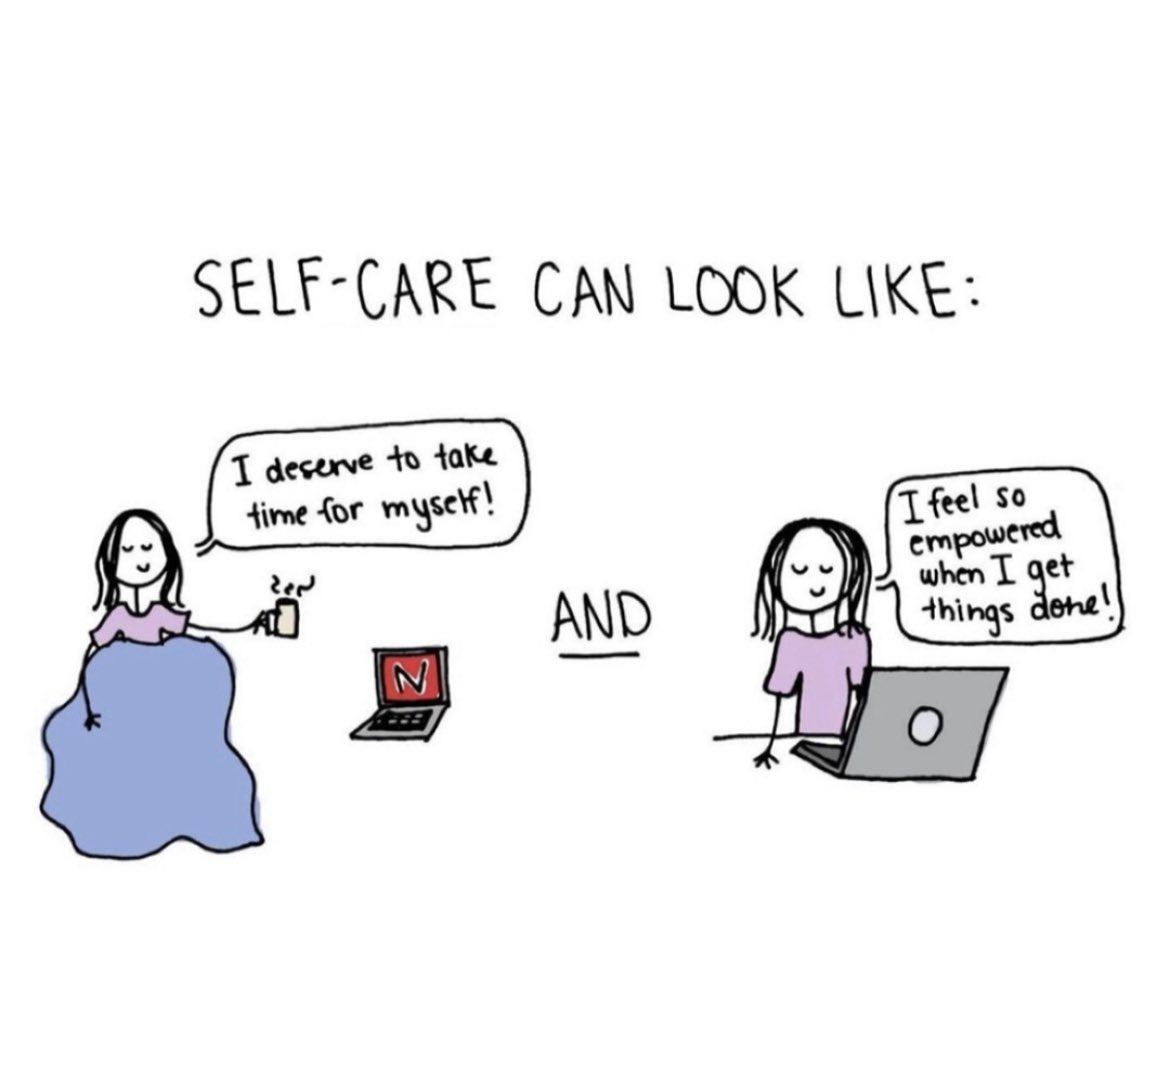 This is what I'm going to remember this week 👏🏻 For each of us, self-care looks different 🖤